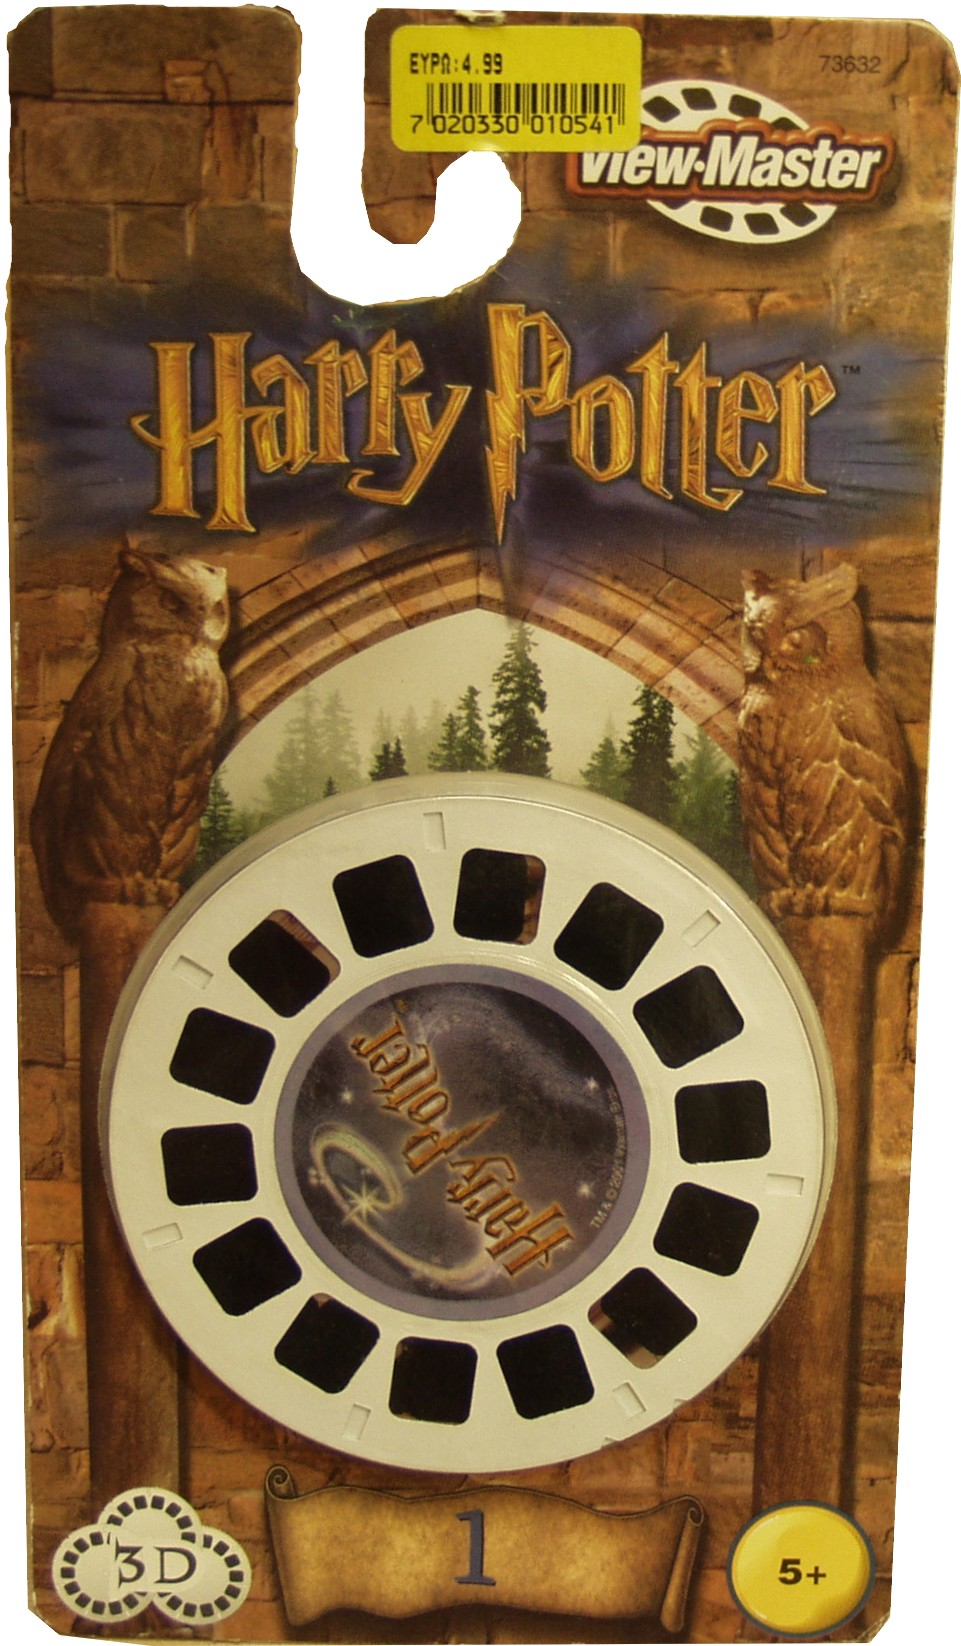 HARRY POTTER VIEW-MASTER